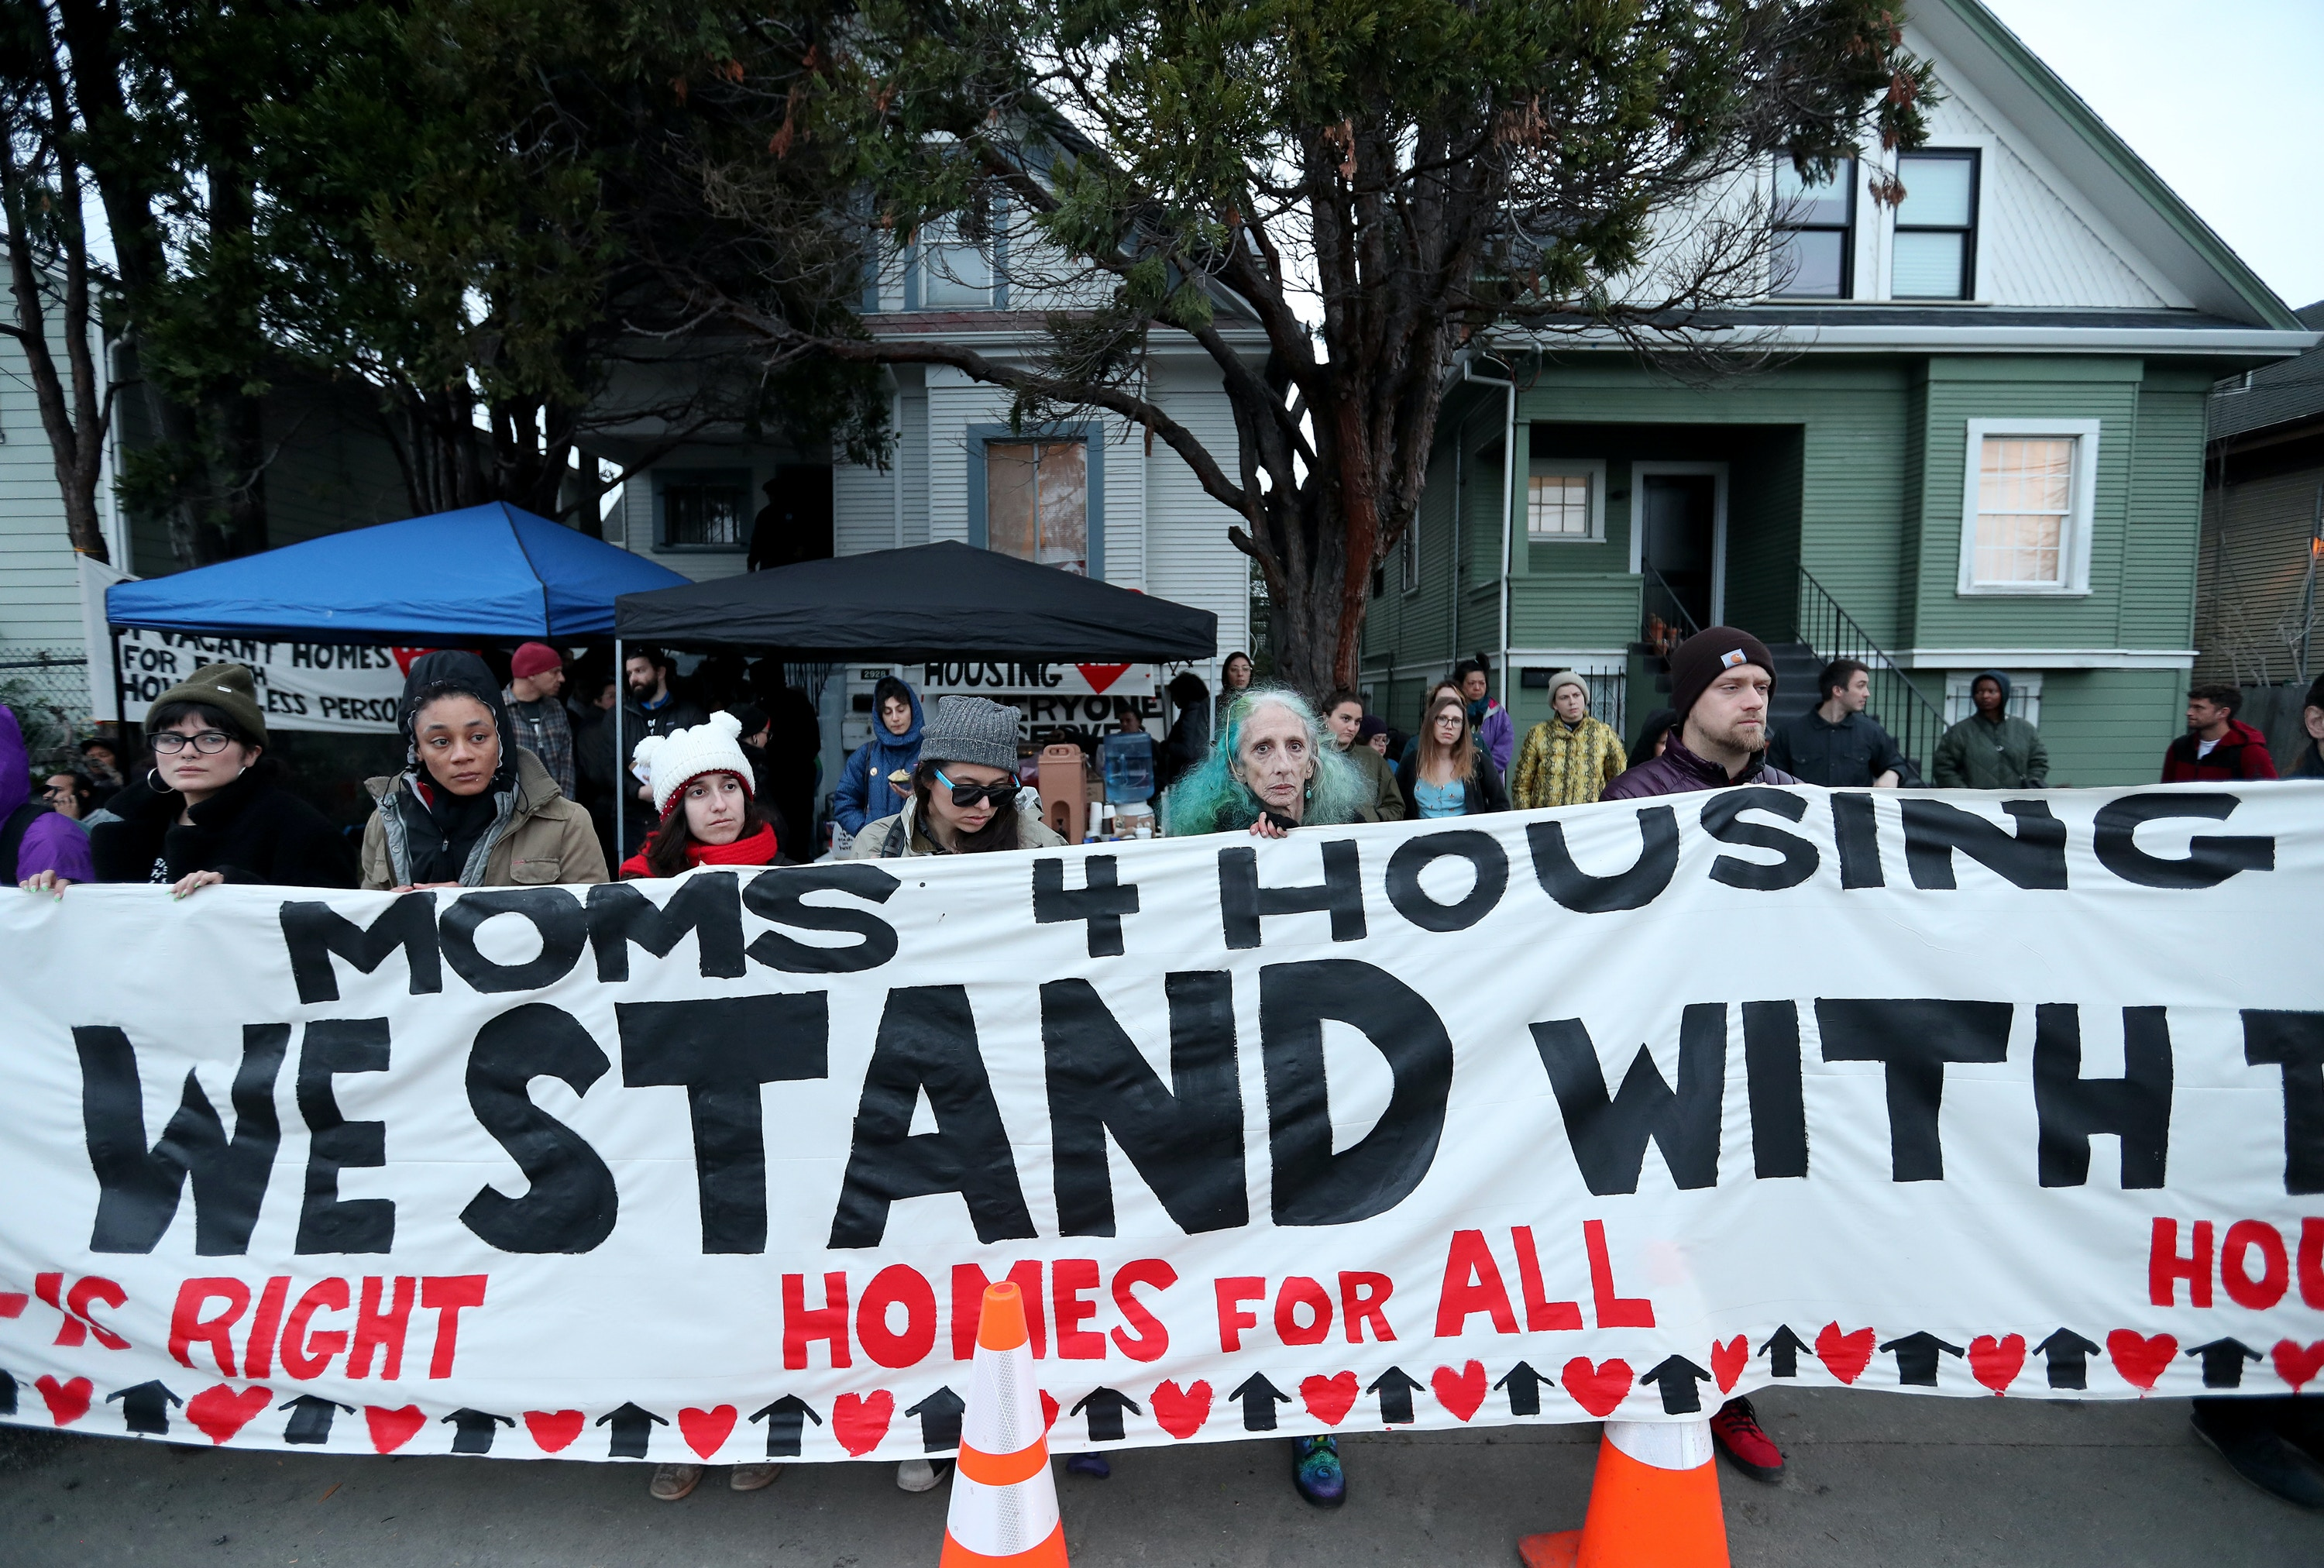 OAKLAND, CA - JANUARY 13: Moms 4 Housing supporters protest in front of a vacant house in West Oakland, Calif., on Monday, January 13, 2020. Members of the group have been illegally occupying the home since November to bring attention to affordable housing issues. (Jane Tyska/Digital First Media/East Bay Times via Getty Images)